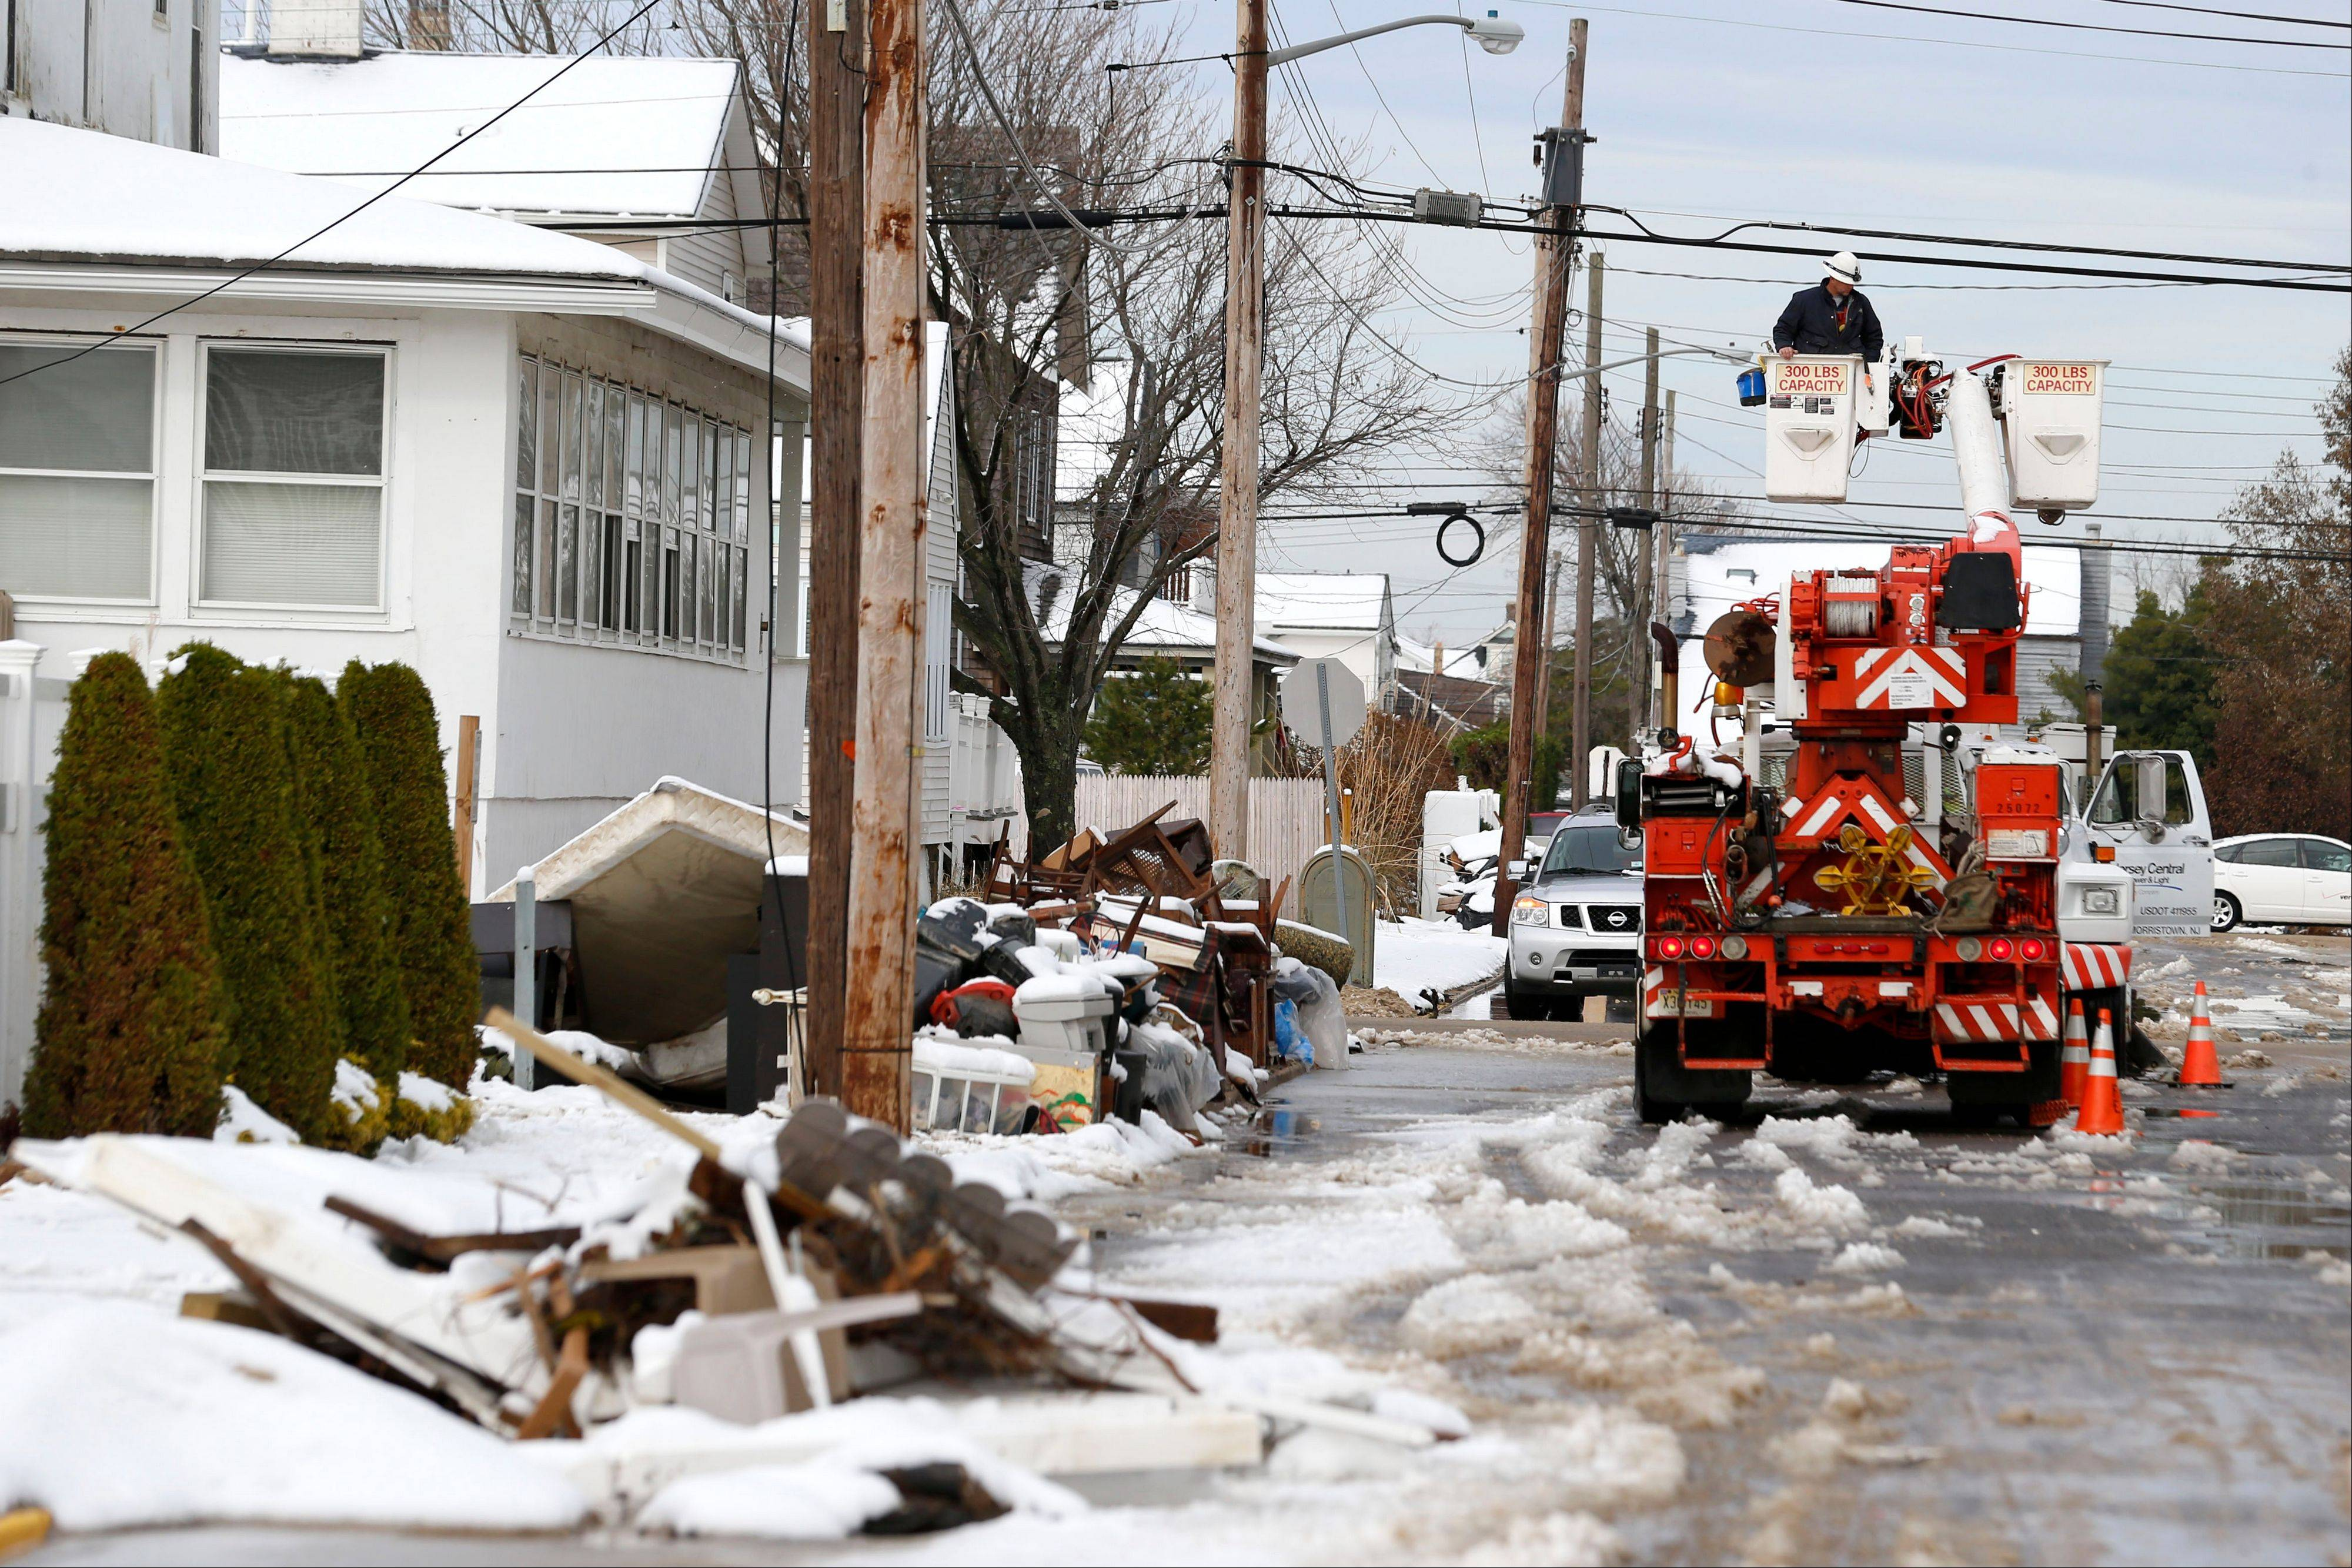 Utility workers check the power lines as snow covered debris from Superstorm Sandy lay on the side of a street following a nor'easter storm, Thursday, in Point Pleasant, N.J. The New York-New Jersey region woke up to wet snow and more power outages Thursday after the nor'easter pushed back efforts to recover from Superstorm Sandy.